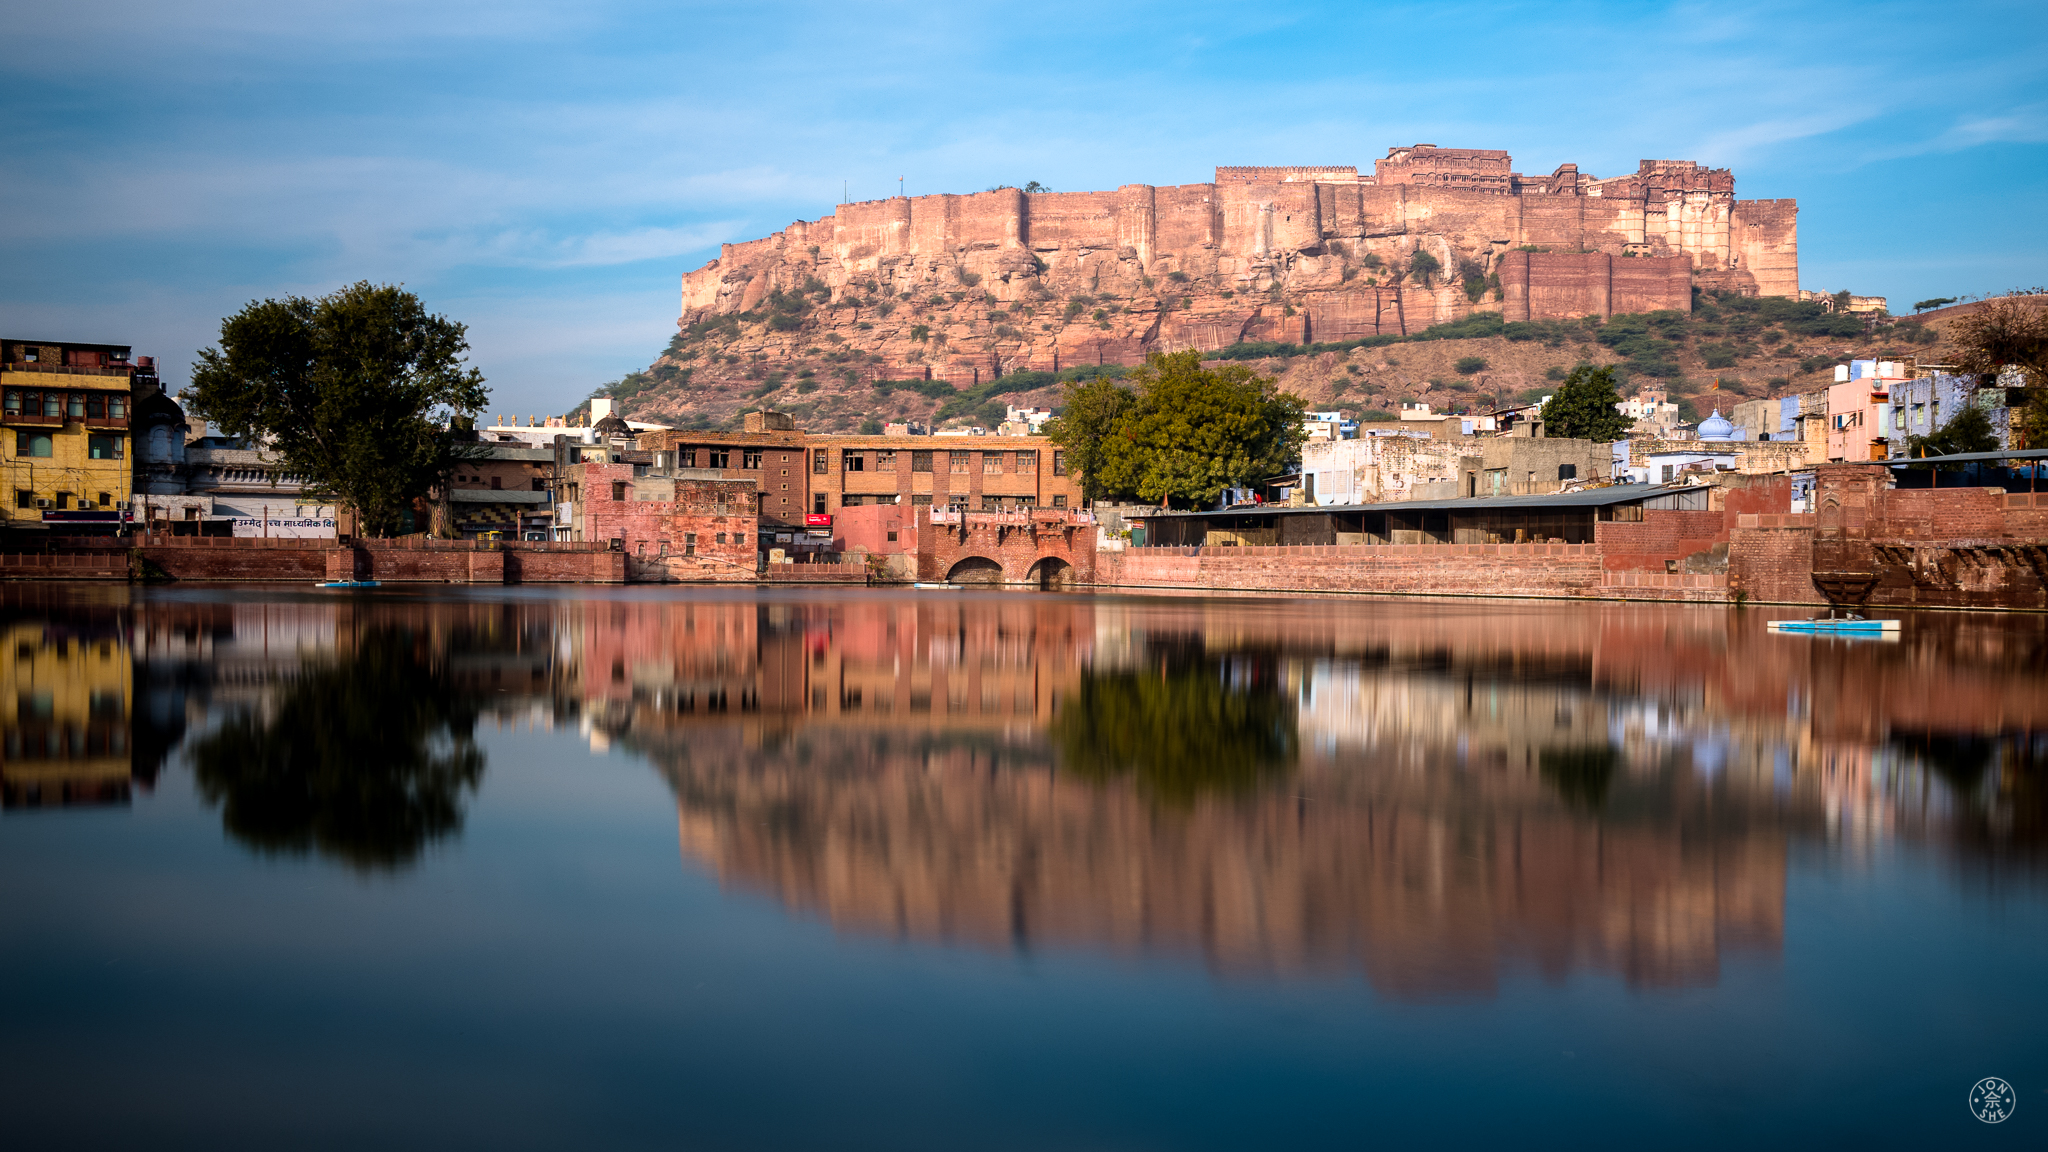 """The Fort at Dawn"".  Jodhpur, India. January 2017. © Jon She. Leica M10, Leica Summilux 28mm f/1.4.  A straightforward shot of the fort above the Old Town of Jodhpur."